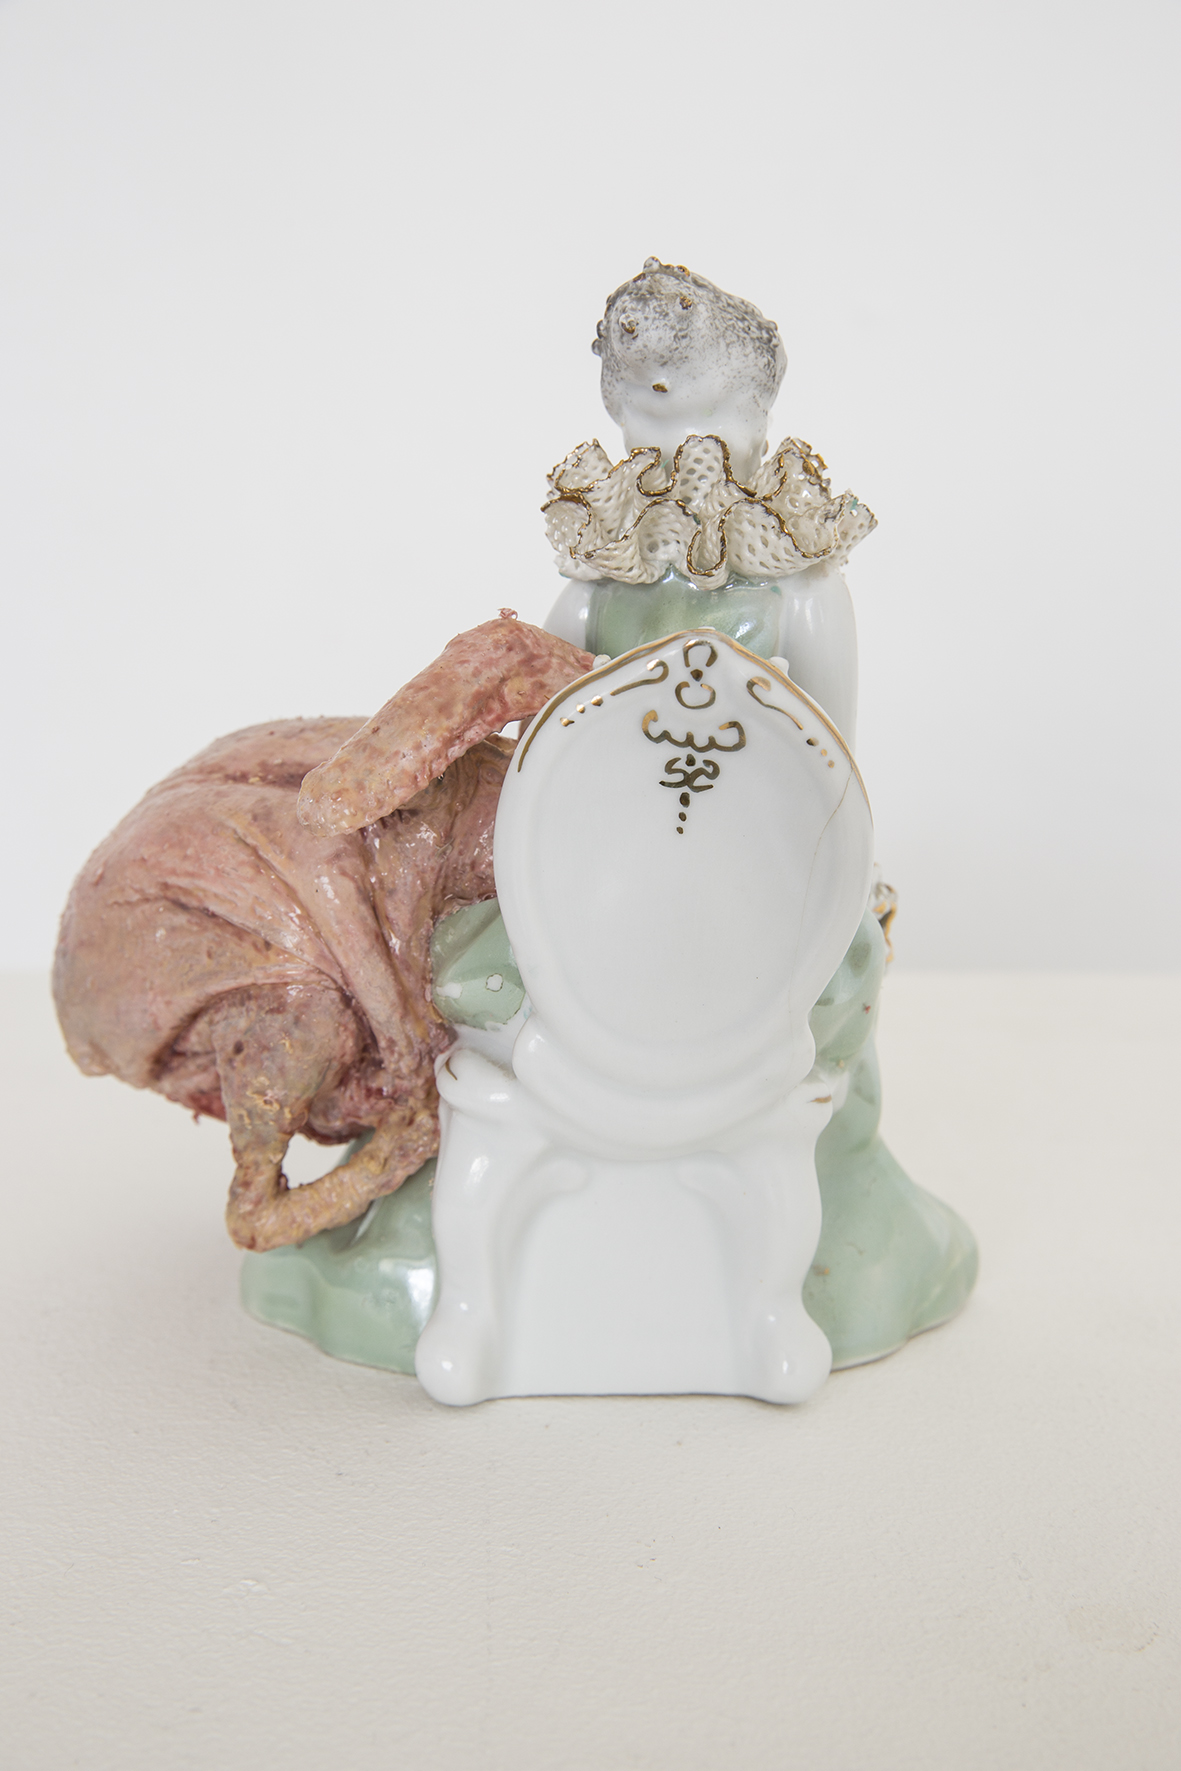 untitled . porcelain, silicone , paint,  20 cm, 2015